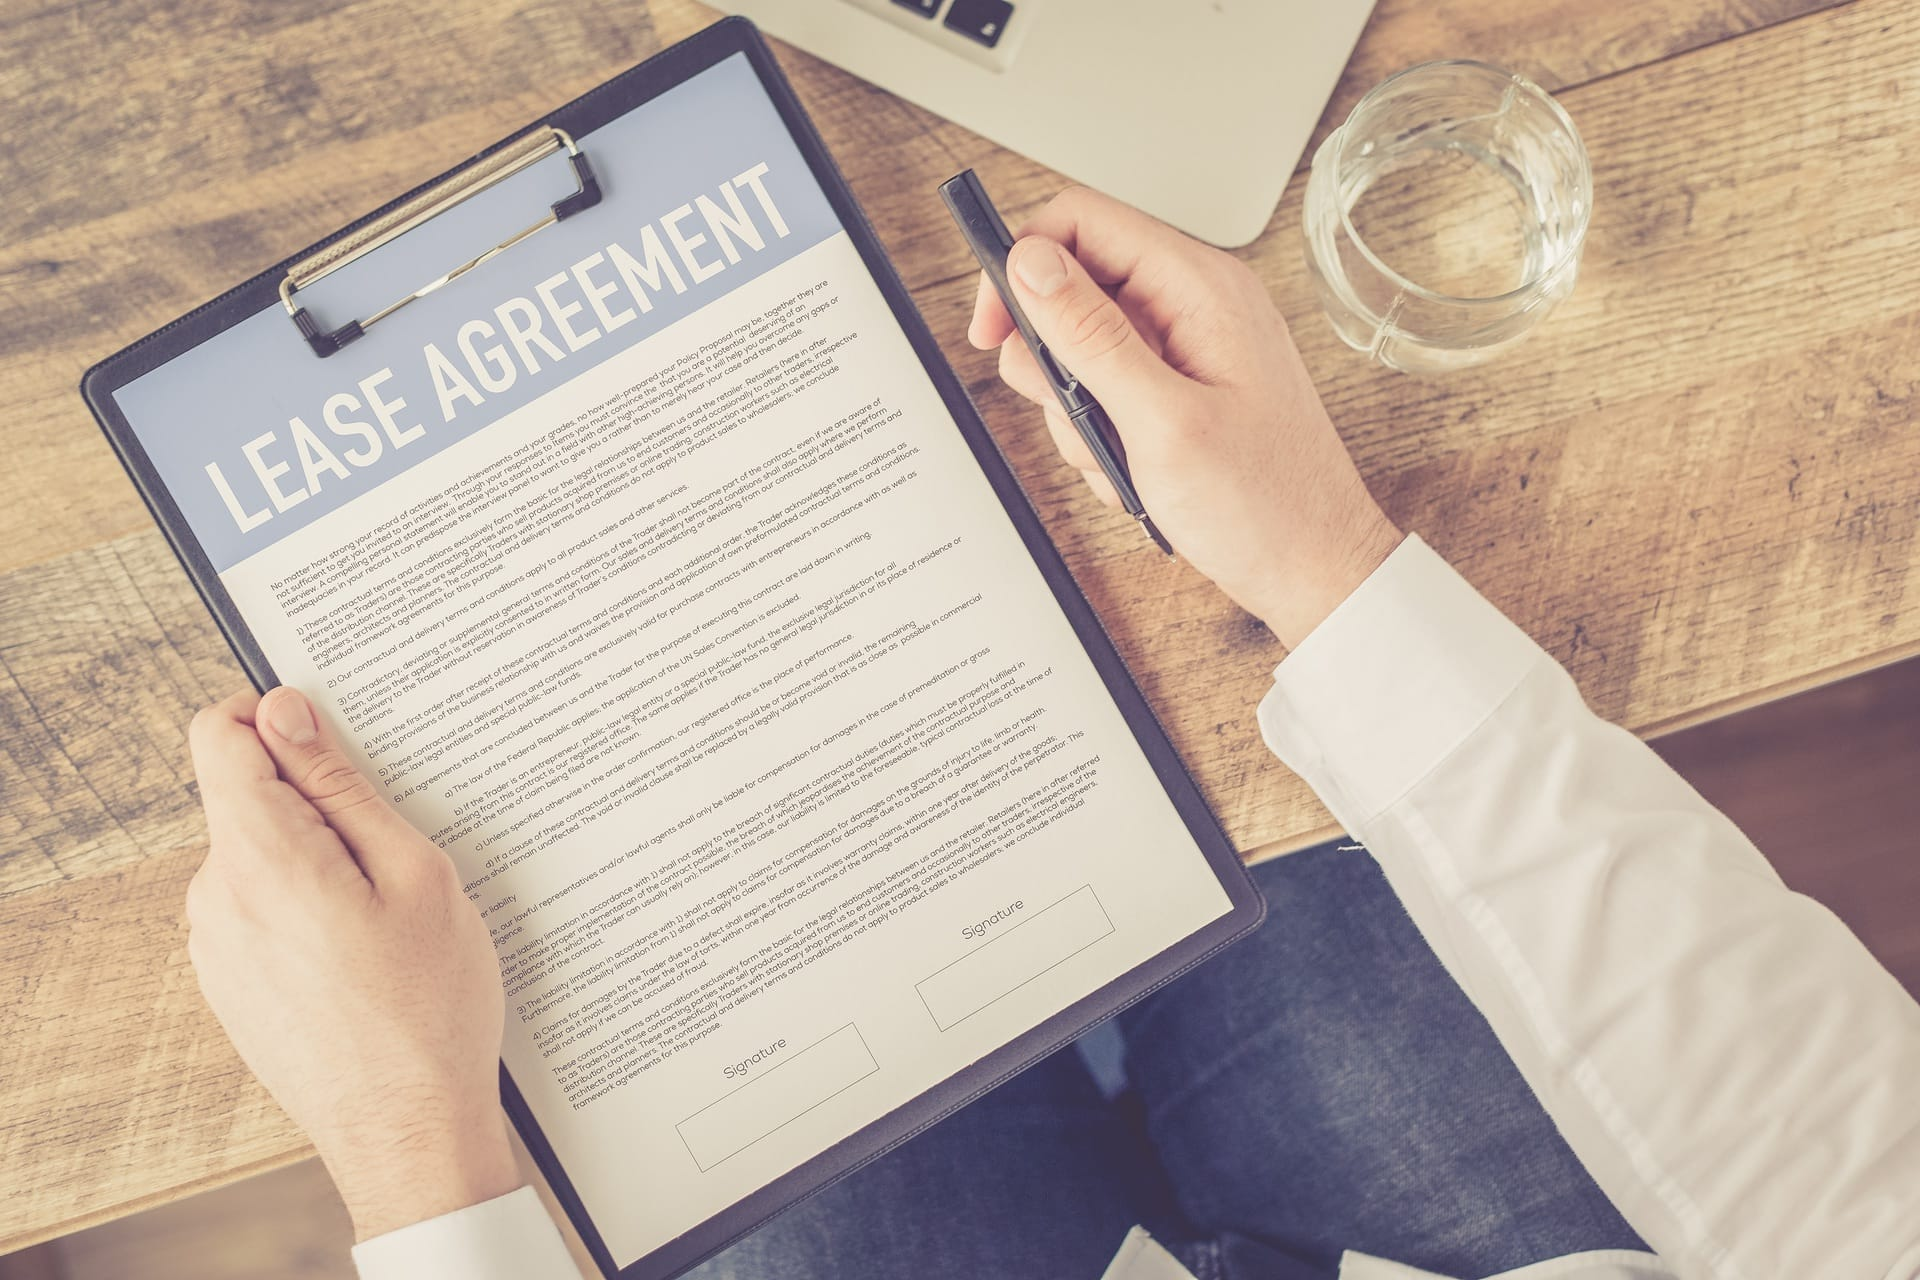 Assignment Of Lease Of Commercial Premises To Consent Or Not To